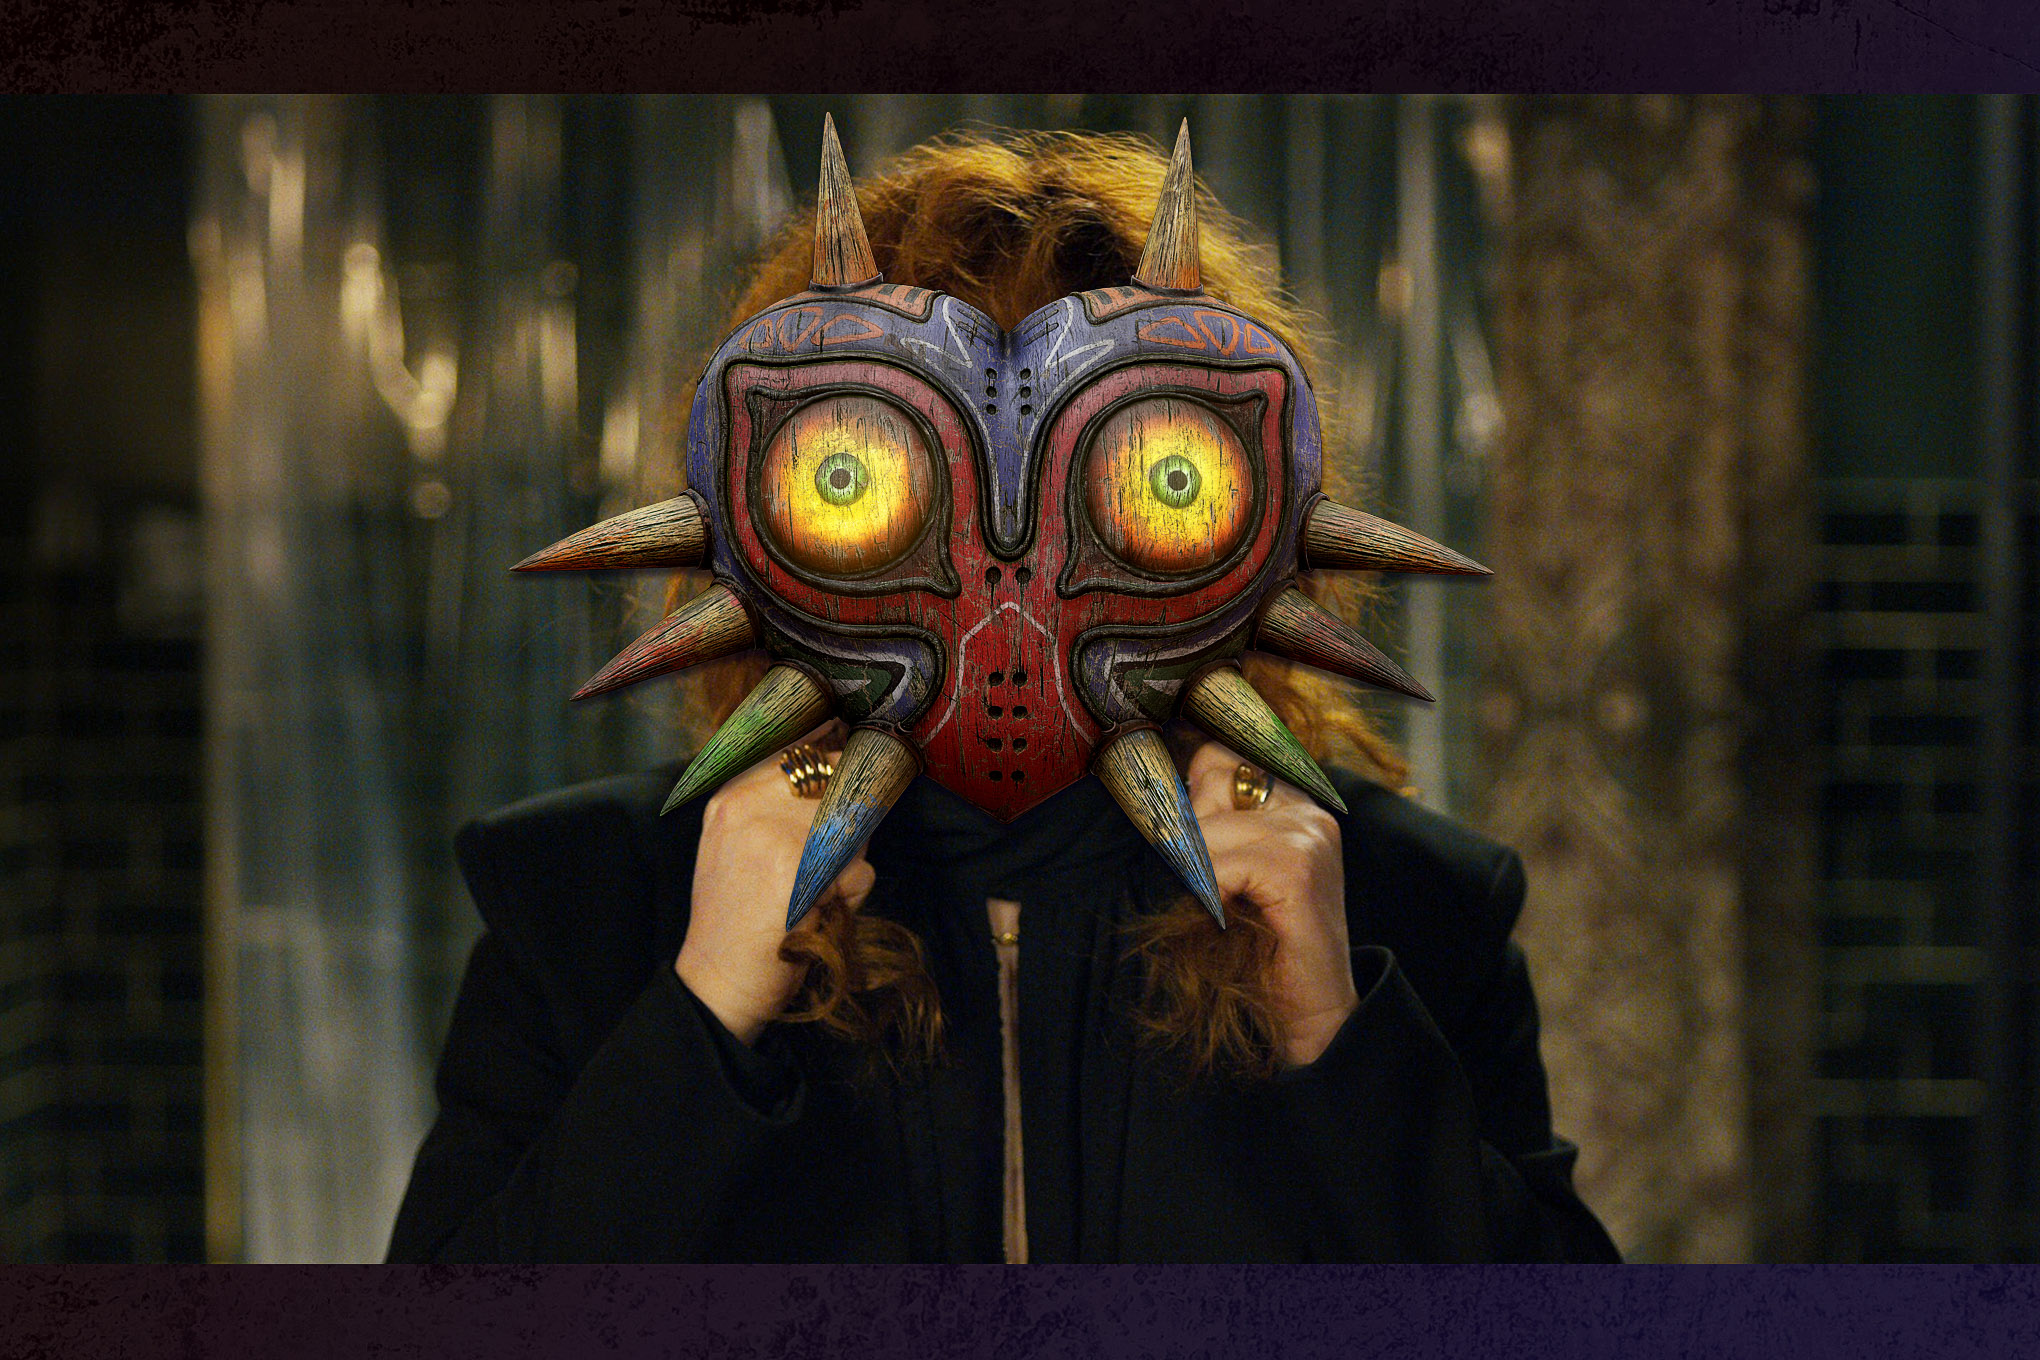 Russian Doll is Netflix's version of Majora's Mask